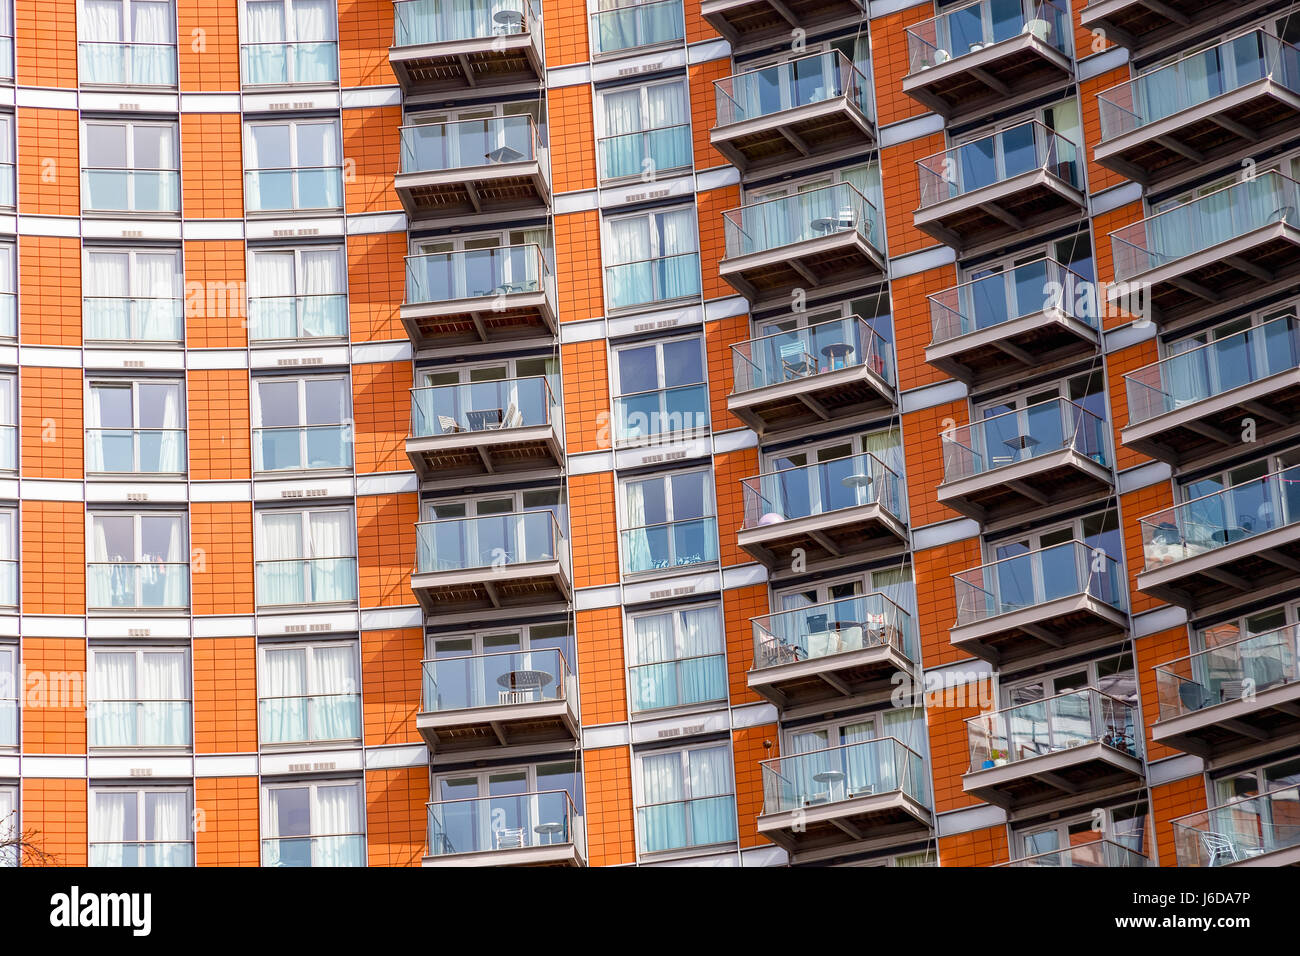 Windows of modern flats in London - Stock Image